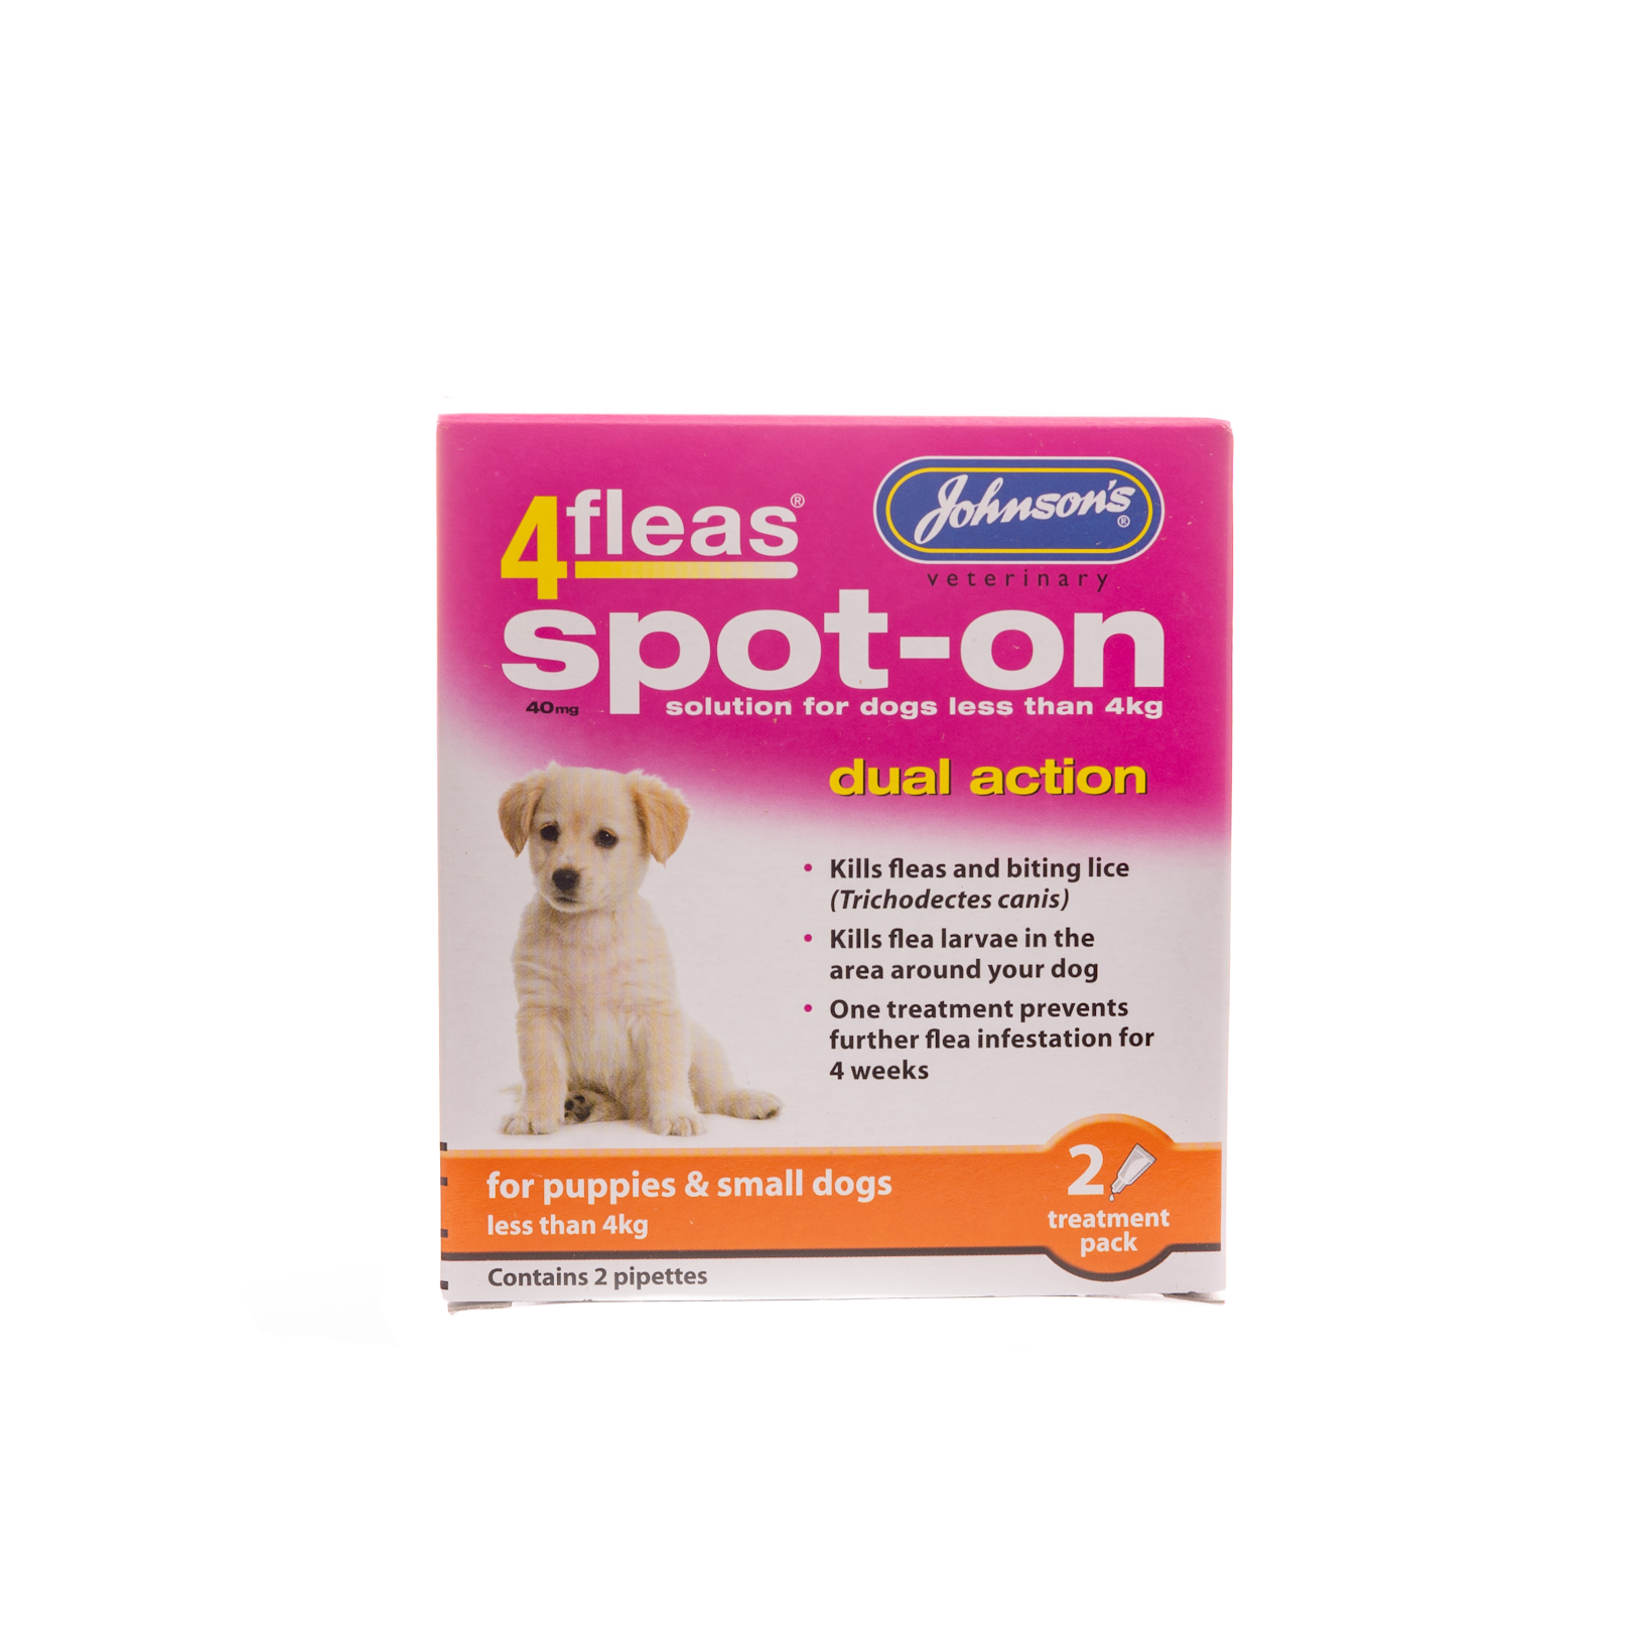 Johnson's Veterinary 4Fleas Spot-on Dual Action Flea & Tick for Puppies & Small Dogs up to 4kg